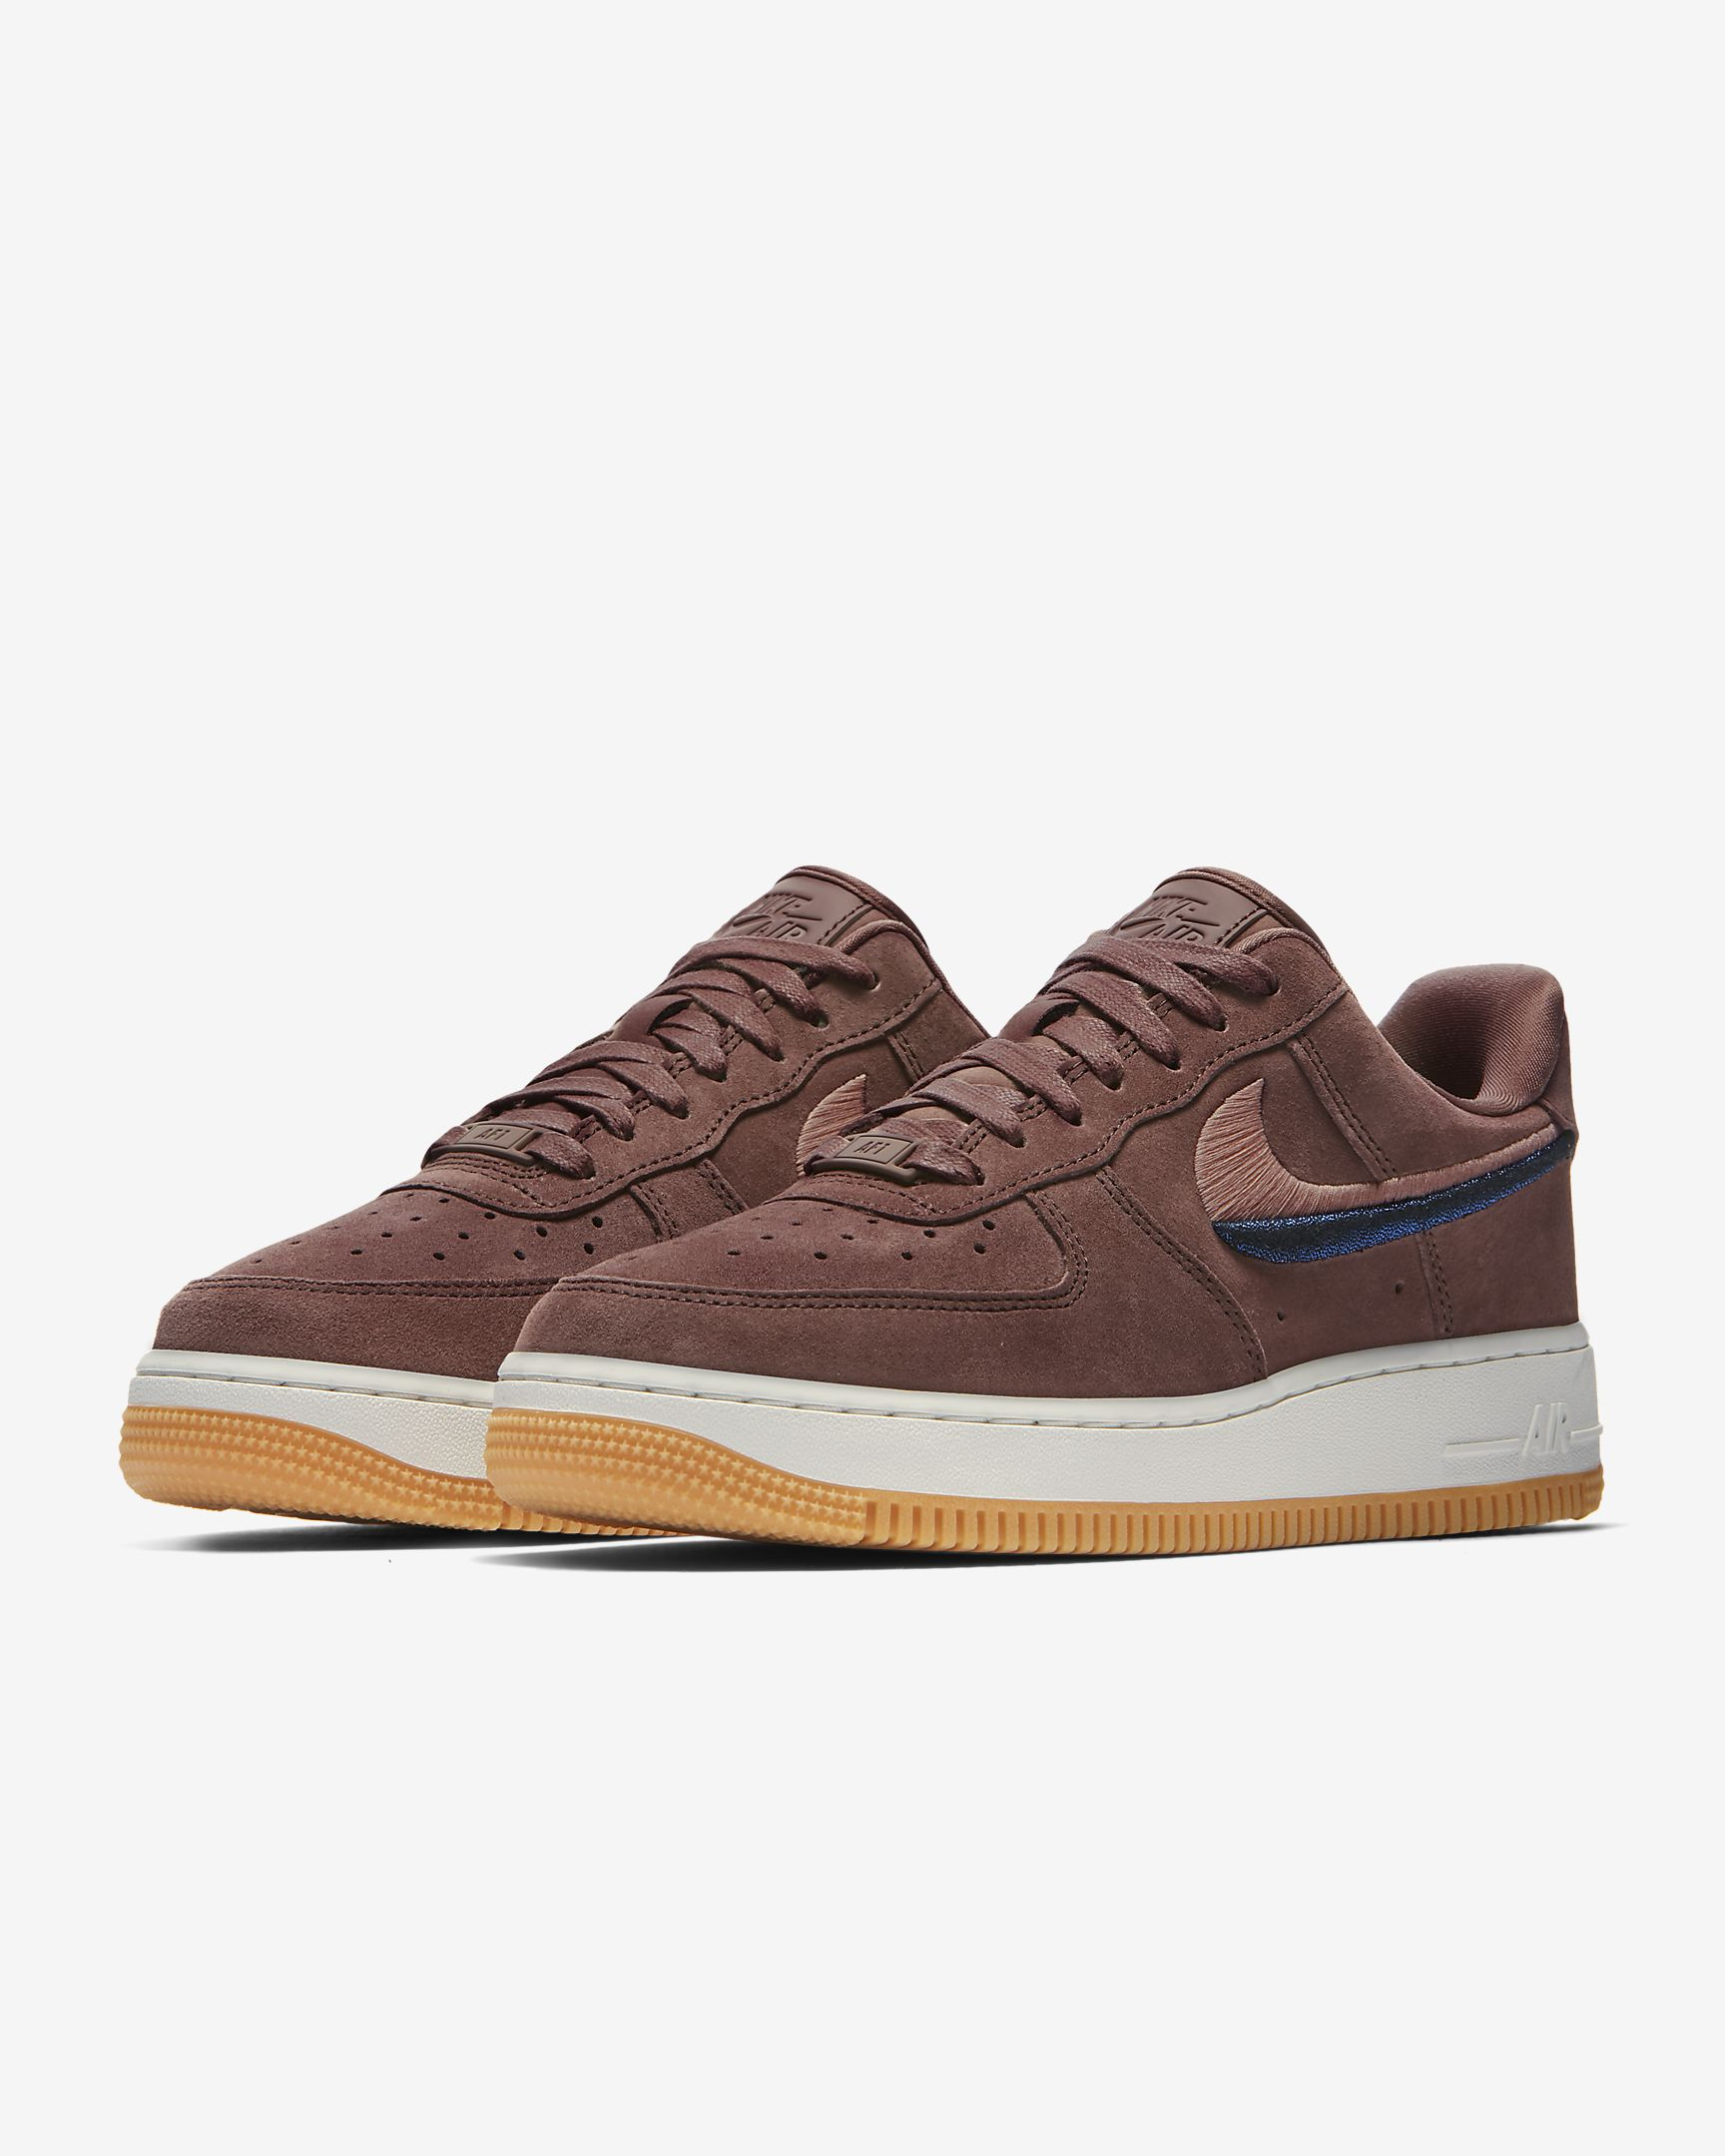 official shop sneakers san francisco Nike Wmns Air Force 1 '07 LX